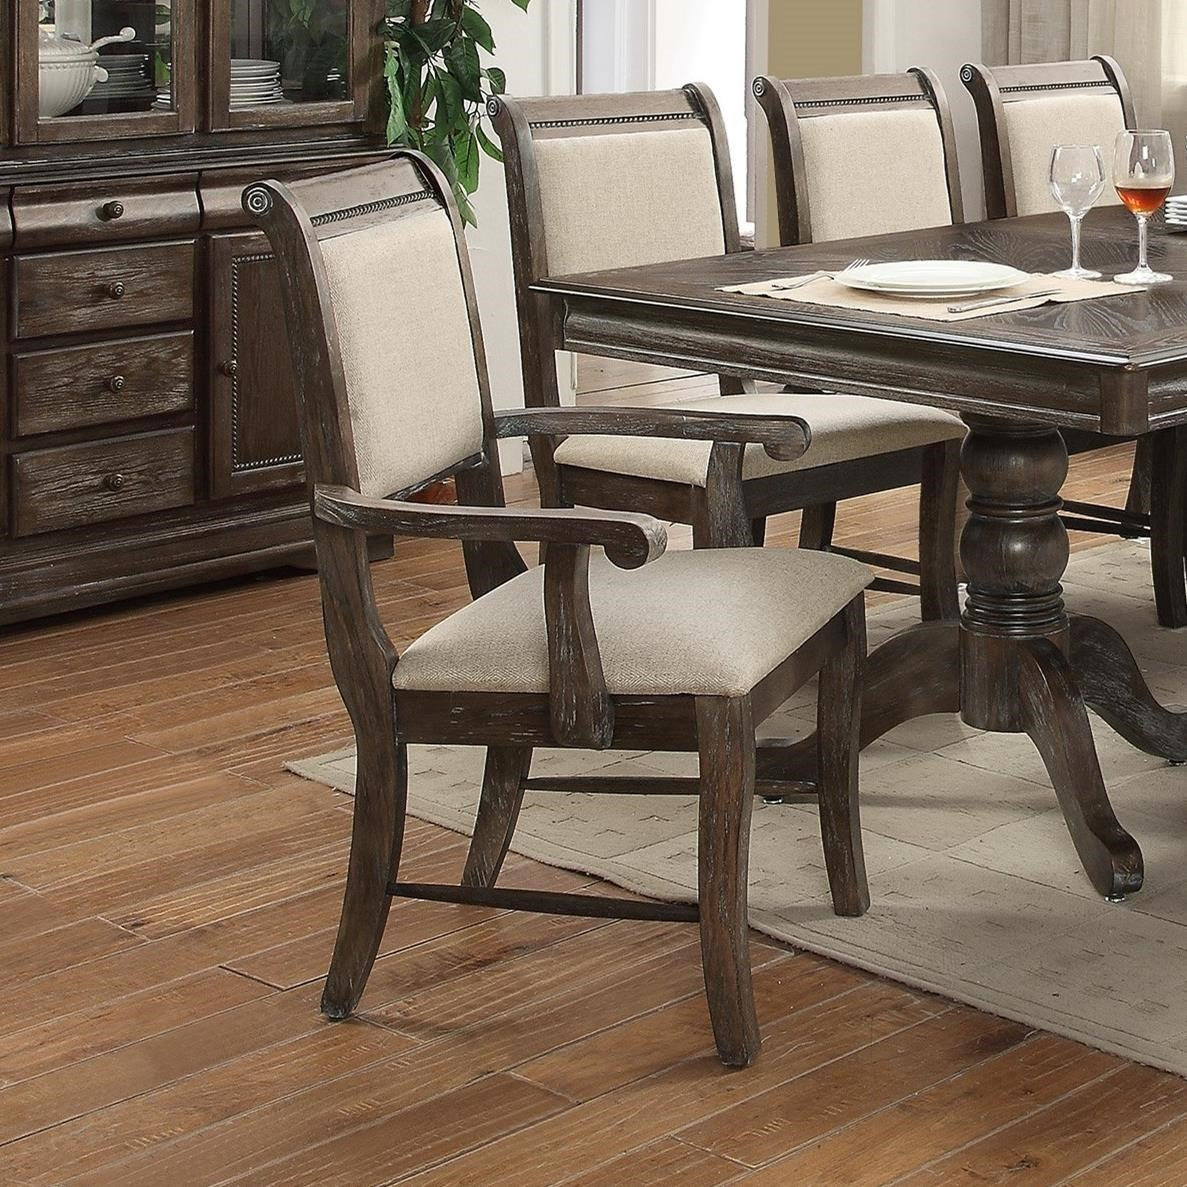 upholstered arm dining chair best beach with canopy crown mark merlot 2147a gy striped seat and back